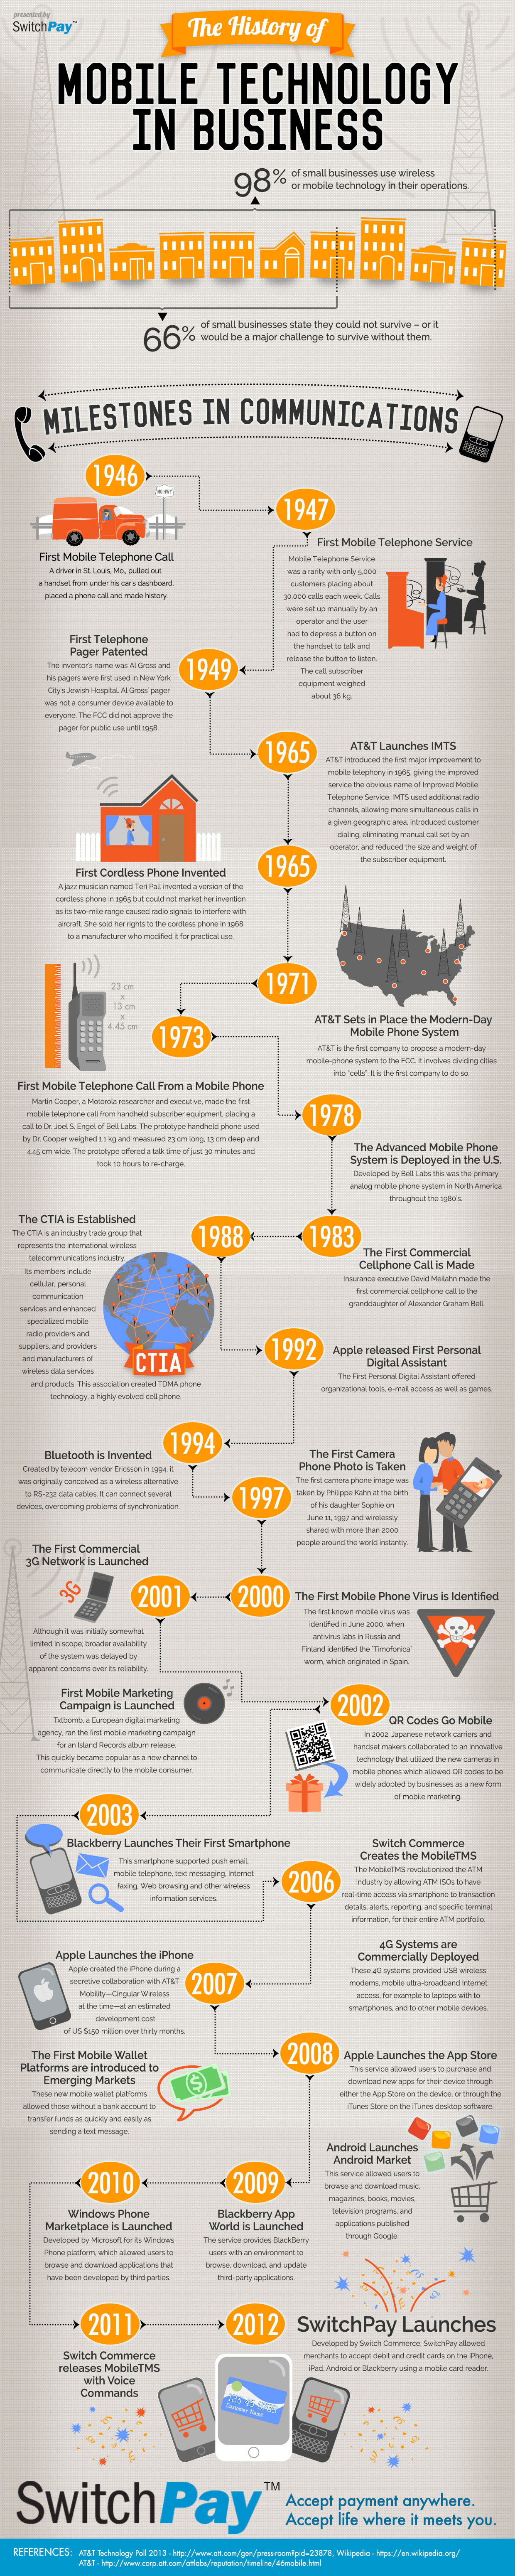 The History of Mobile Technology in Business